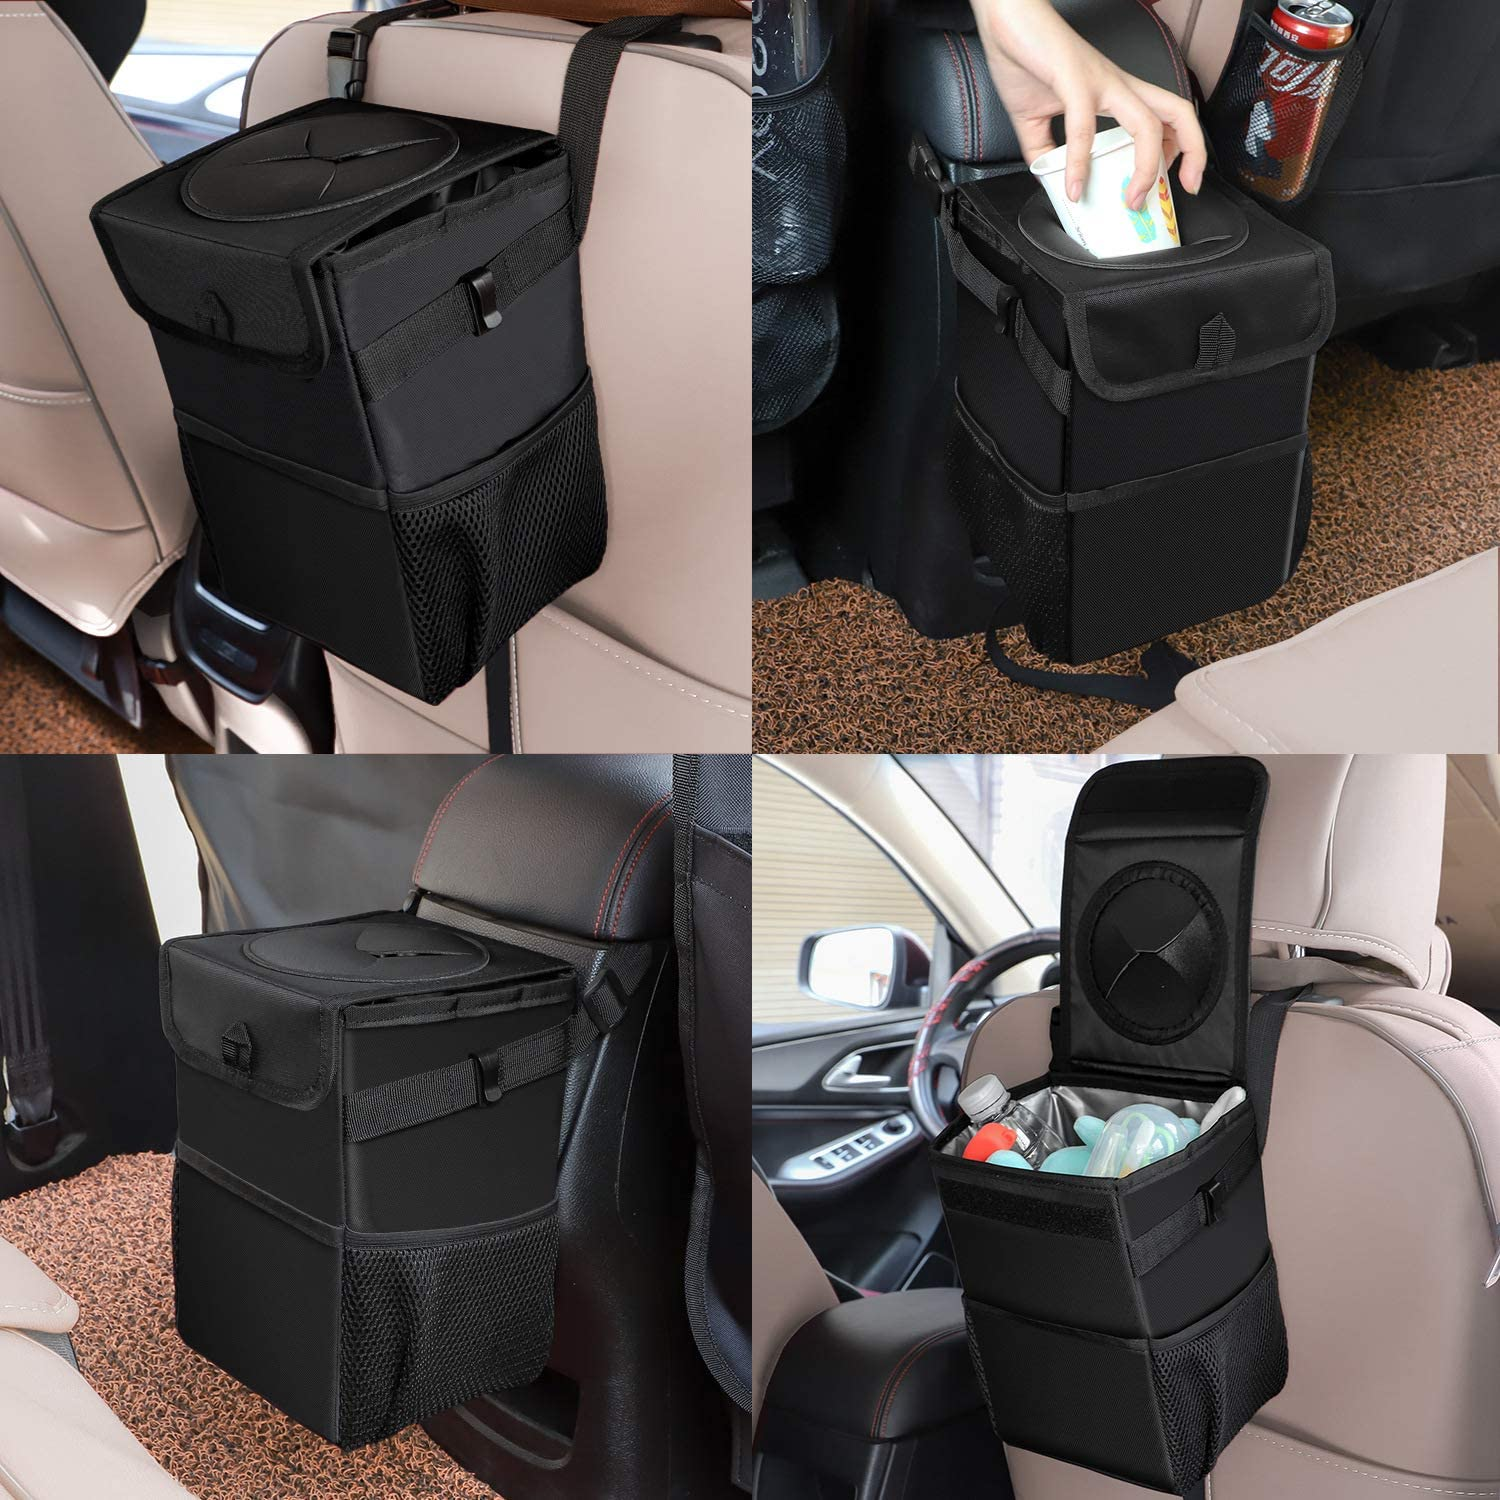 Ryhpez Car Trash Can with Lid Car Trash Bag Hanging with Storage Pockets Collapsible and Portable Car Garbage Bin